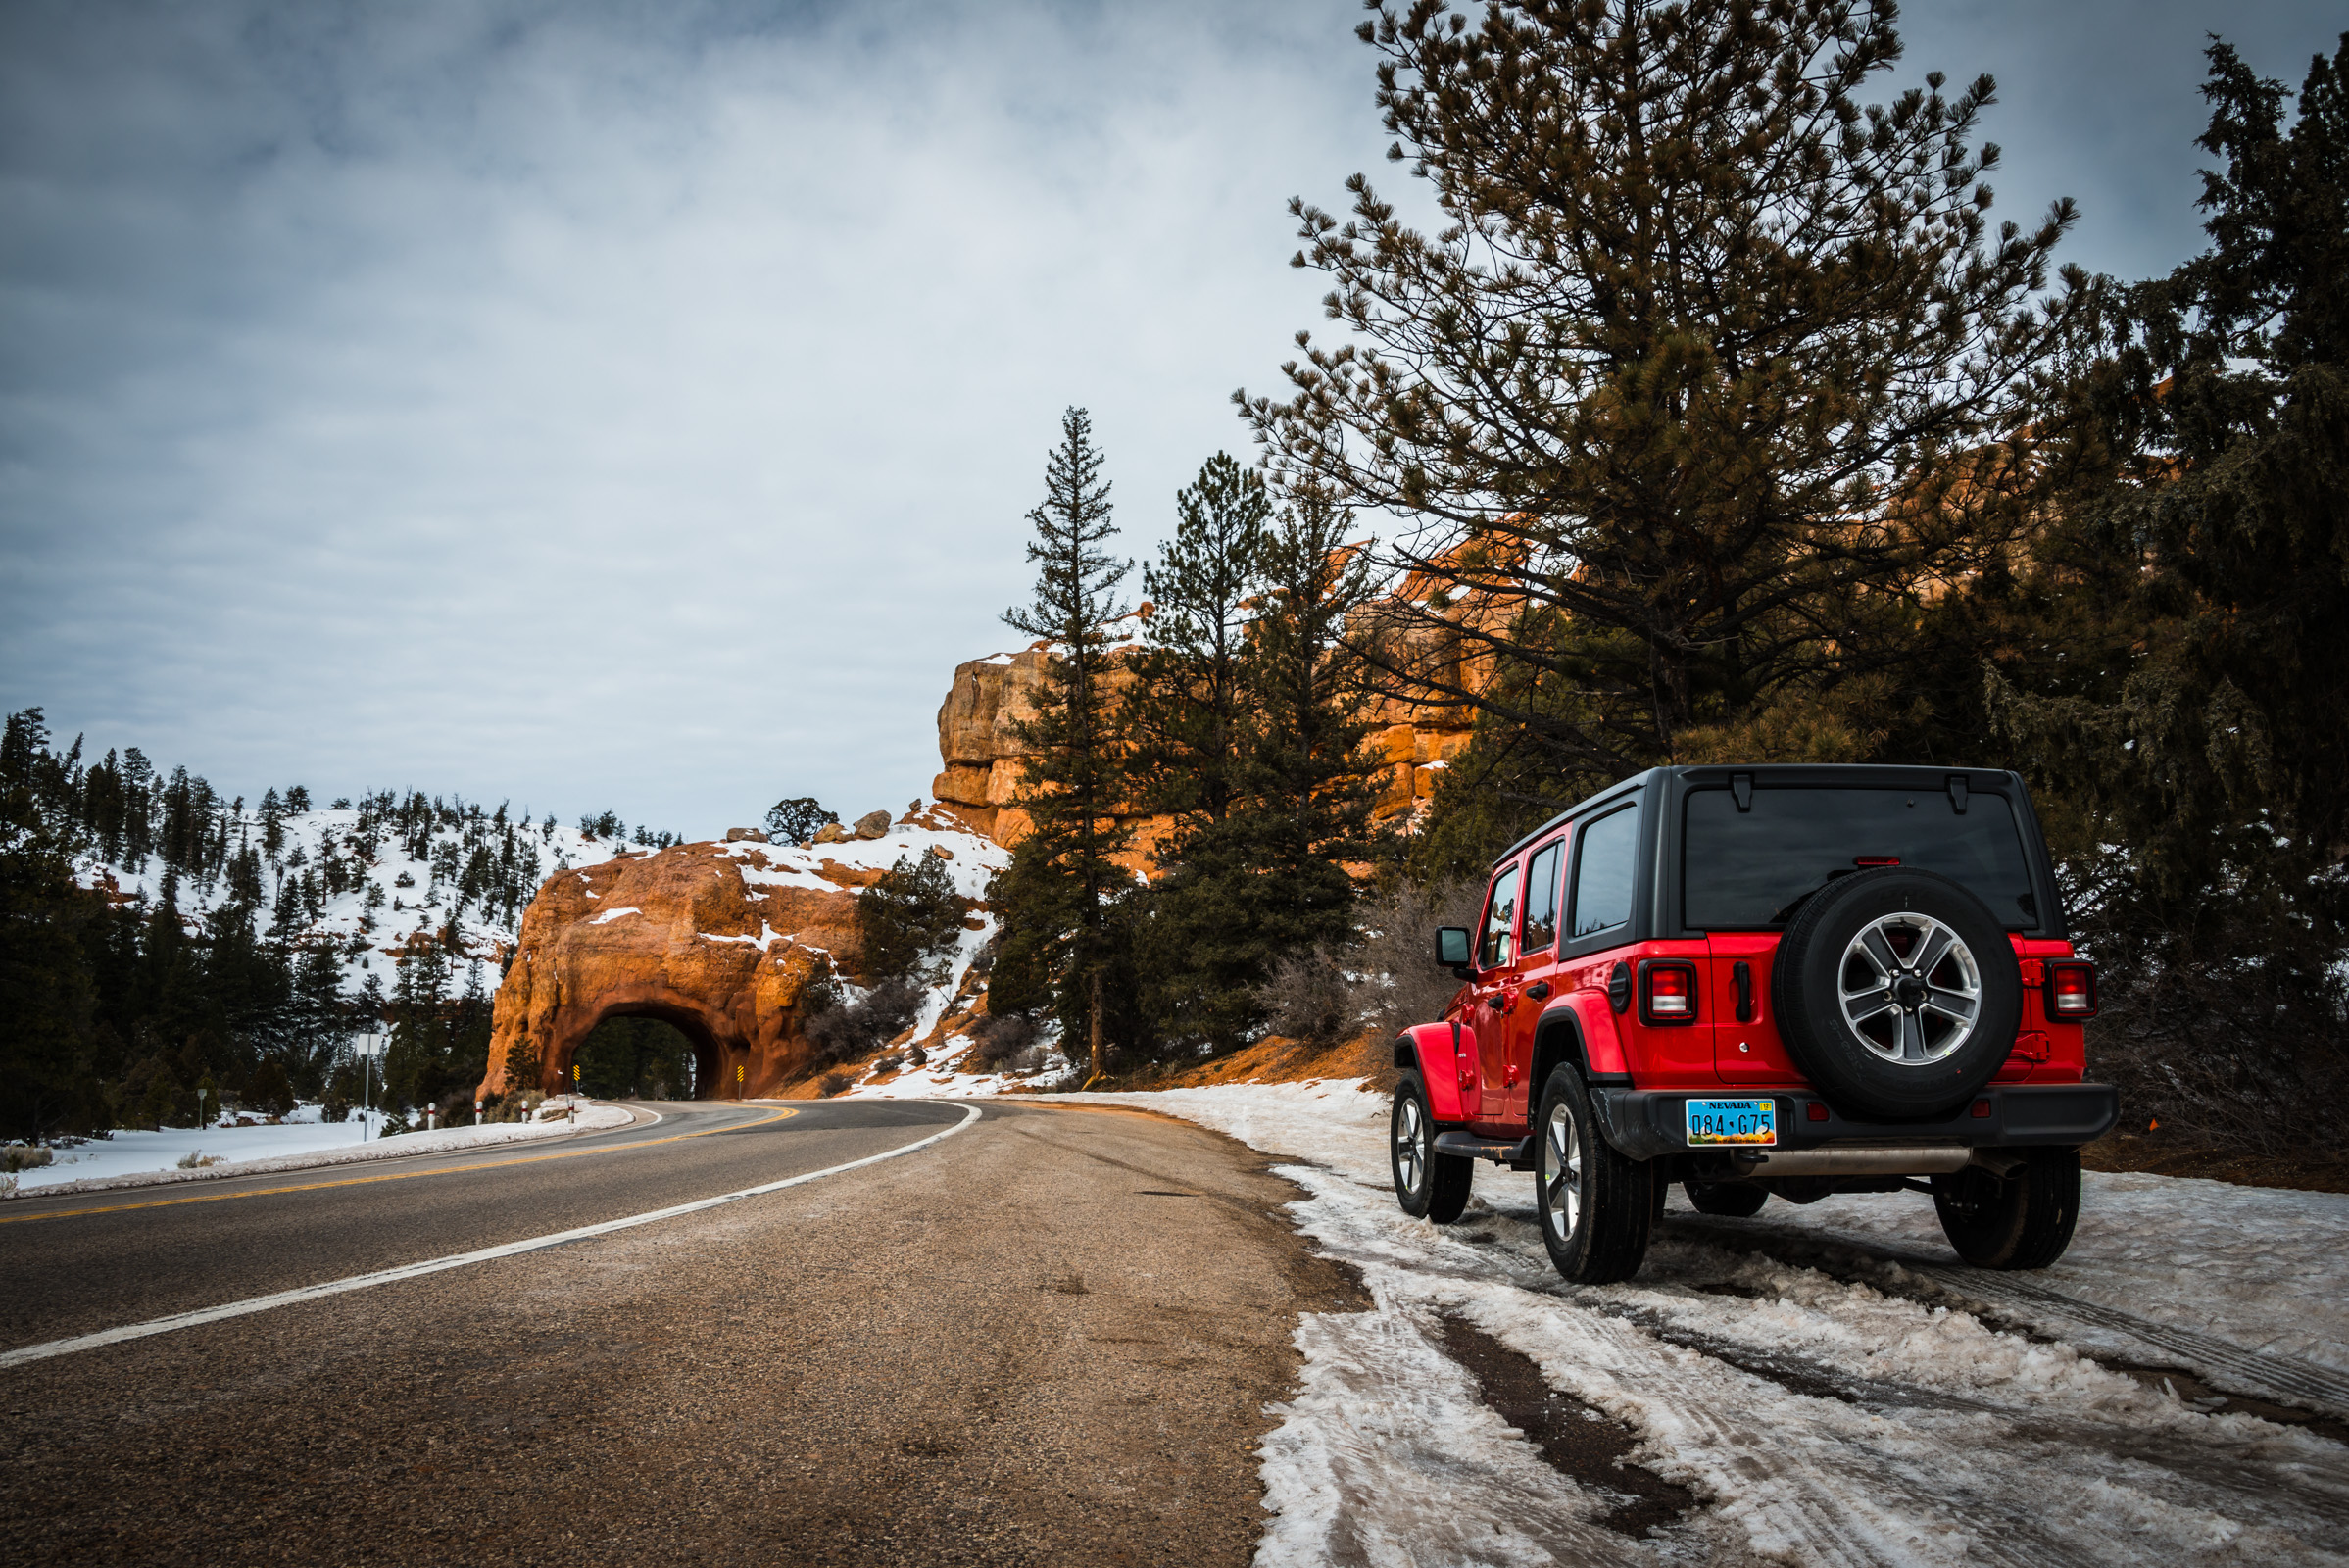 roadside landscape with a jeep wrangler and red rocks in the snow, somewhere between utah and nevada, photographed by jamie bannon photography.